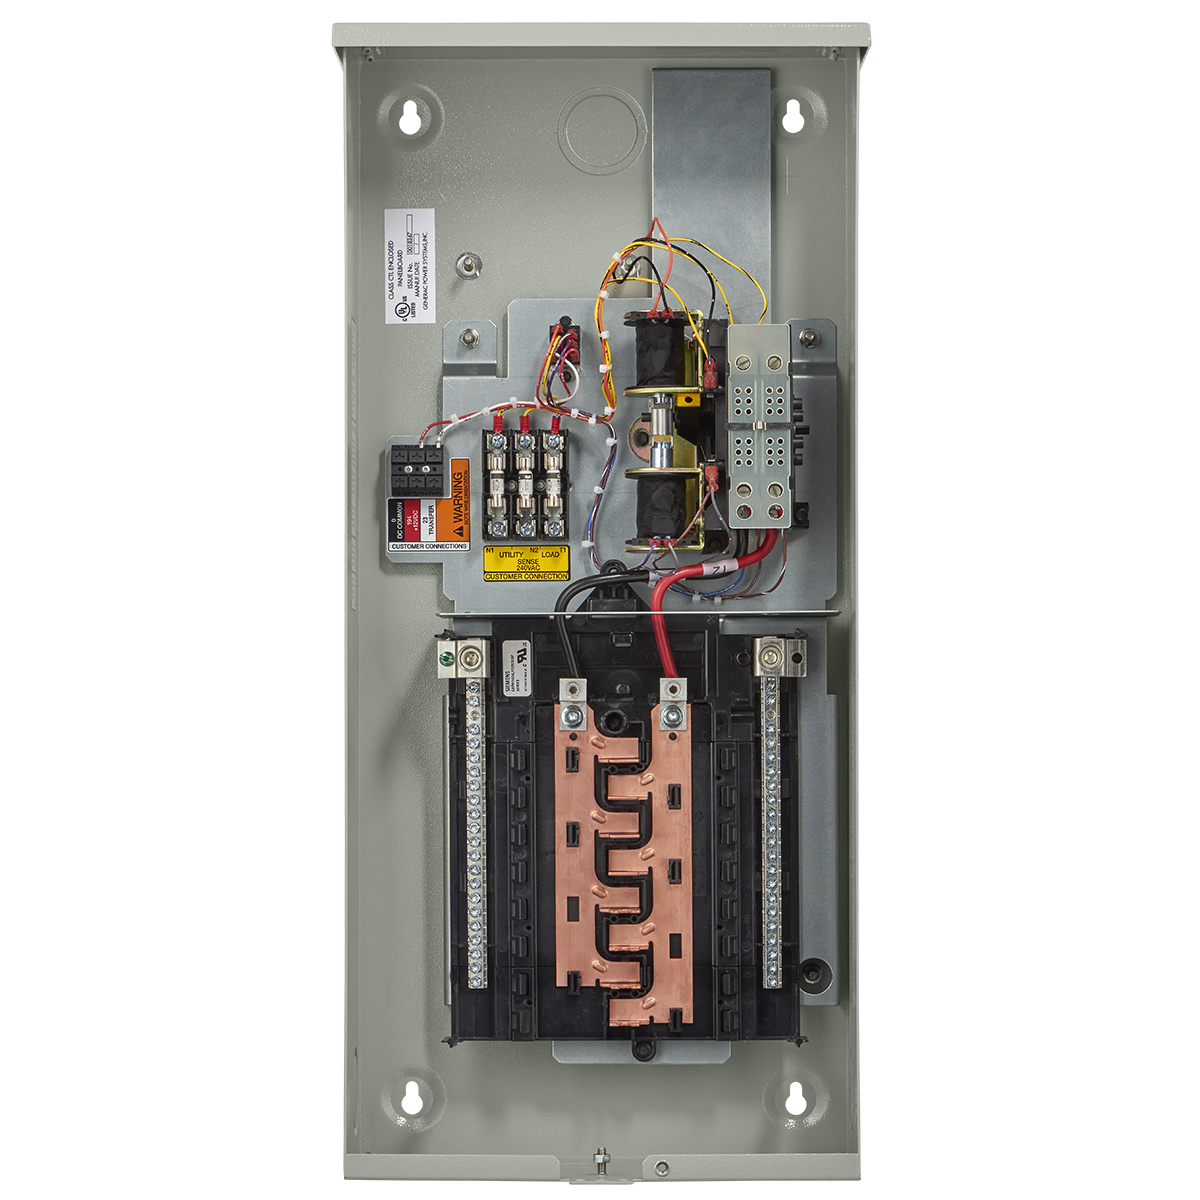 Generac Transfer Switch Weatherproof Smart Wiring Diagram Circuit Nema Model Eza 1200x1200